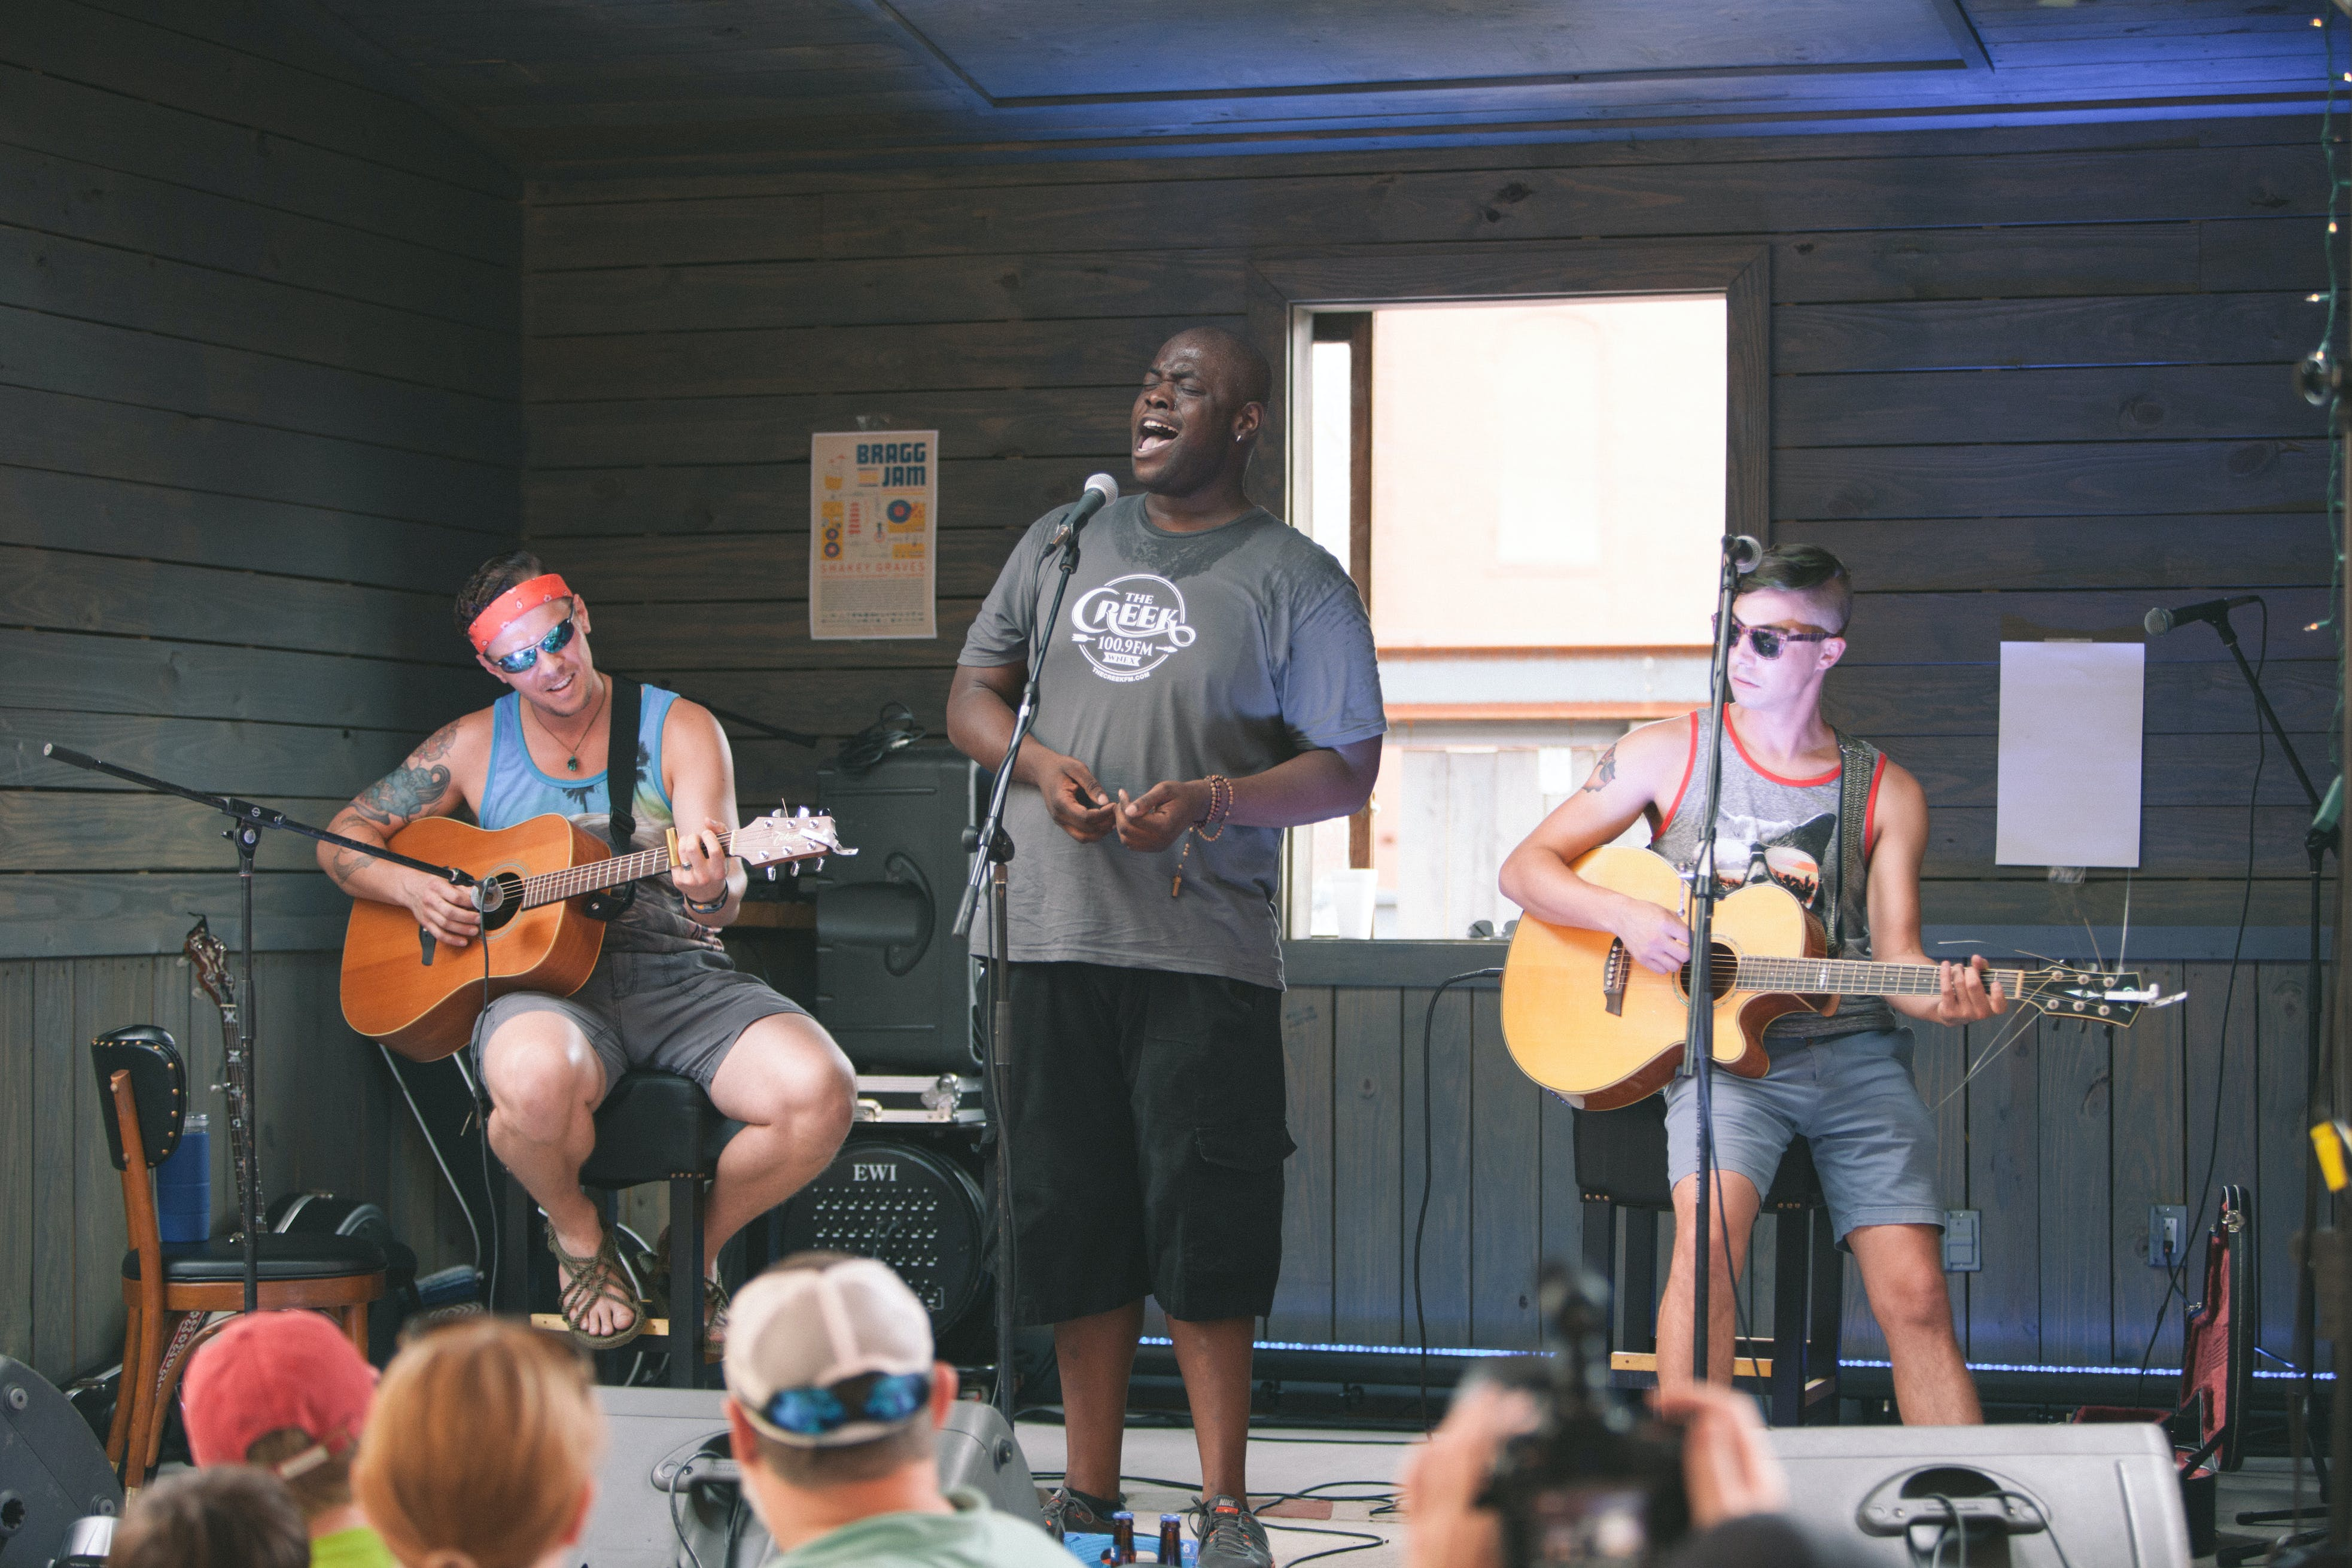 <p>Bragg Jam brings local and national acts like Charles Davis, pictured here, to Macon year-round, and will be expanding their programming through Knight funding. Photo by Tyler Shores.</p>